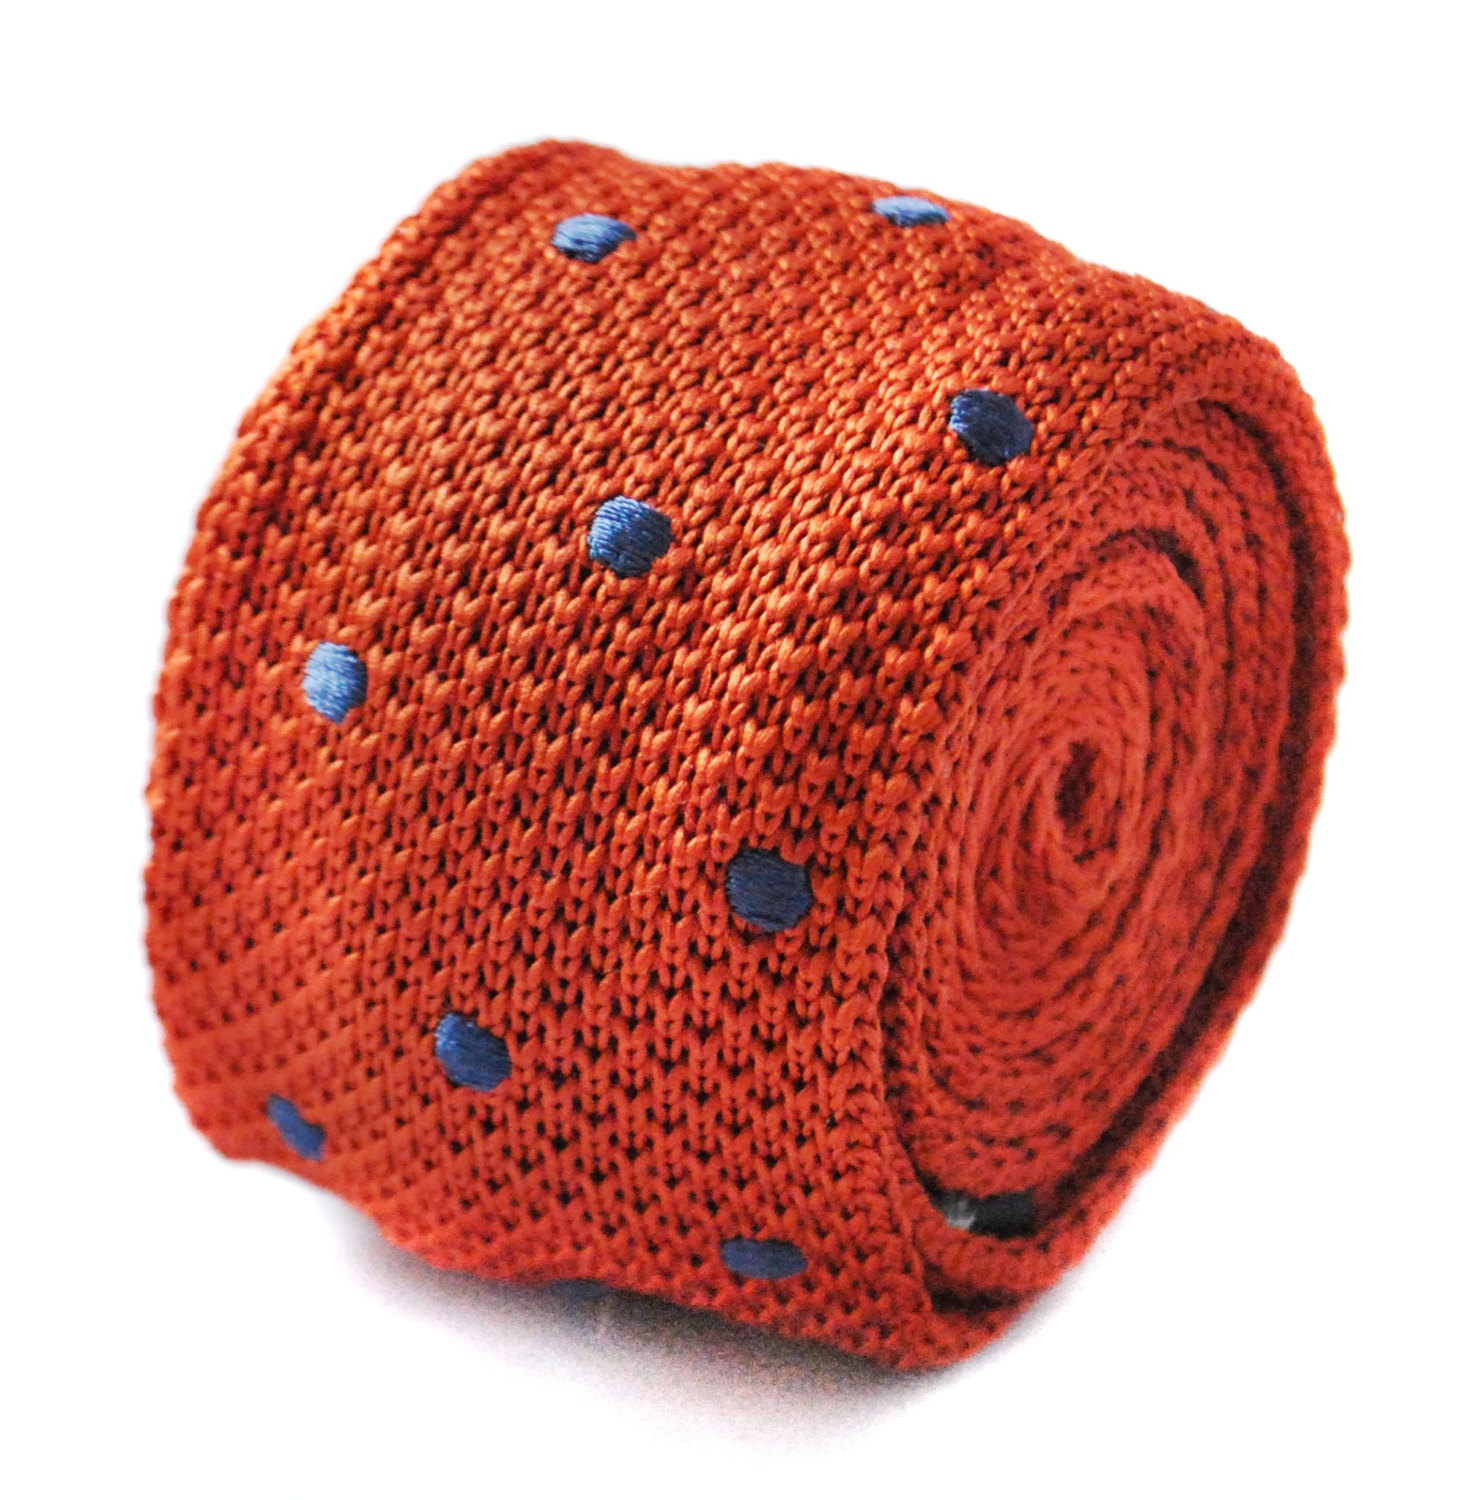 Knitted orange and dark metallic blue spotted tie tie by Frederick Thomas FT1710